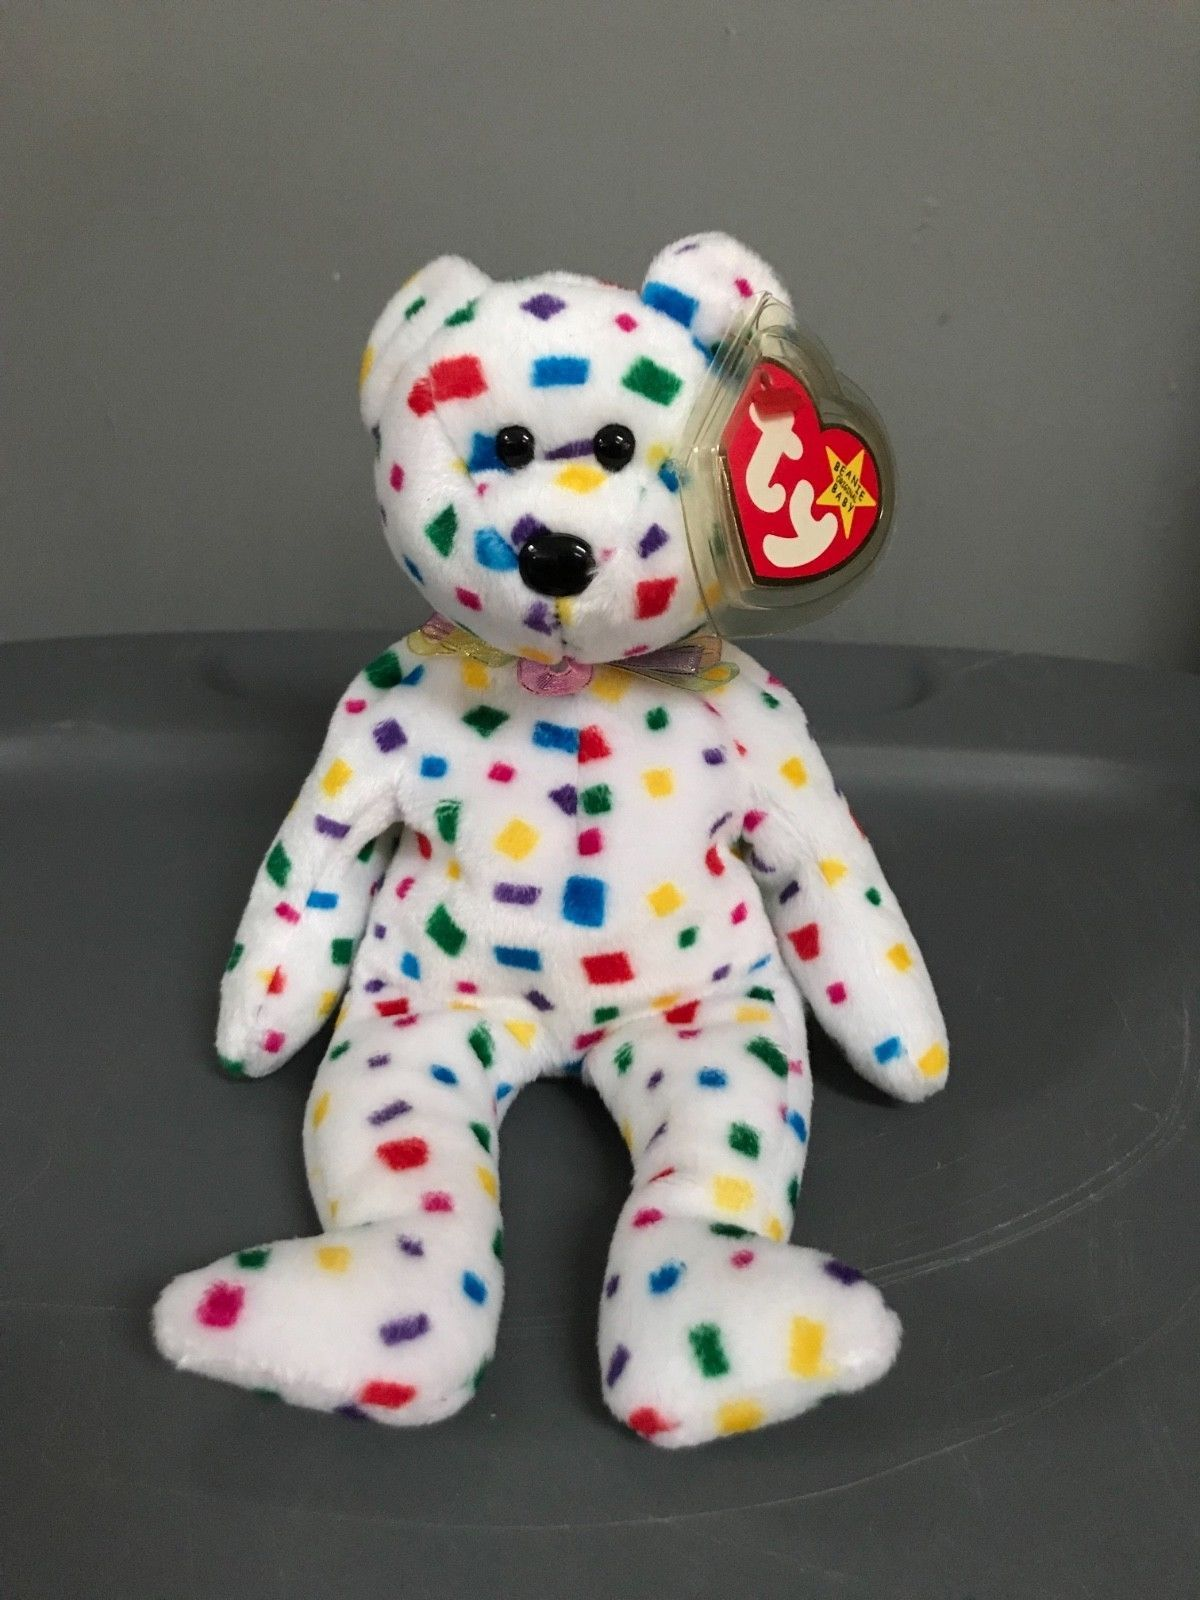 4de0a6f7a69 rare ty 2k beanie baby with errors mint condition